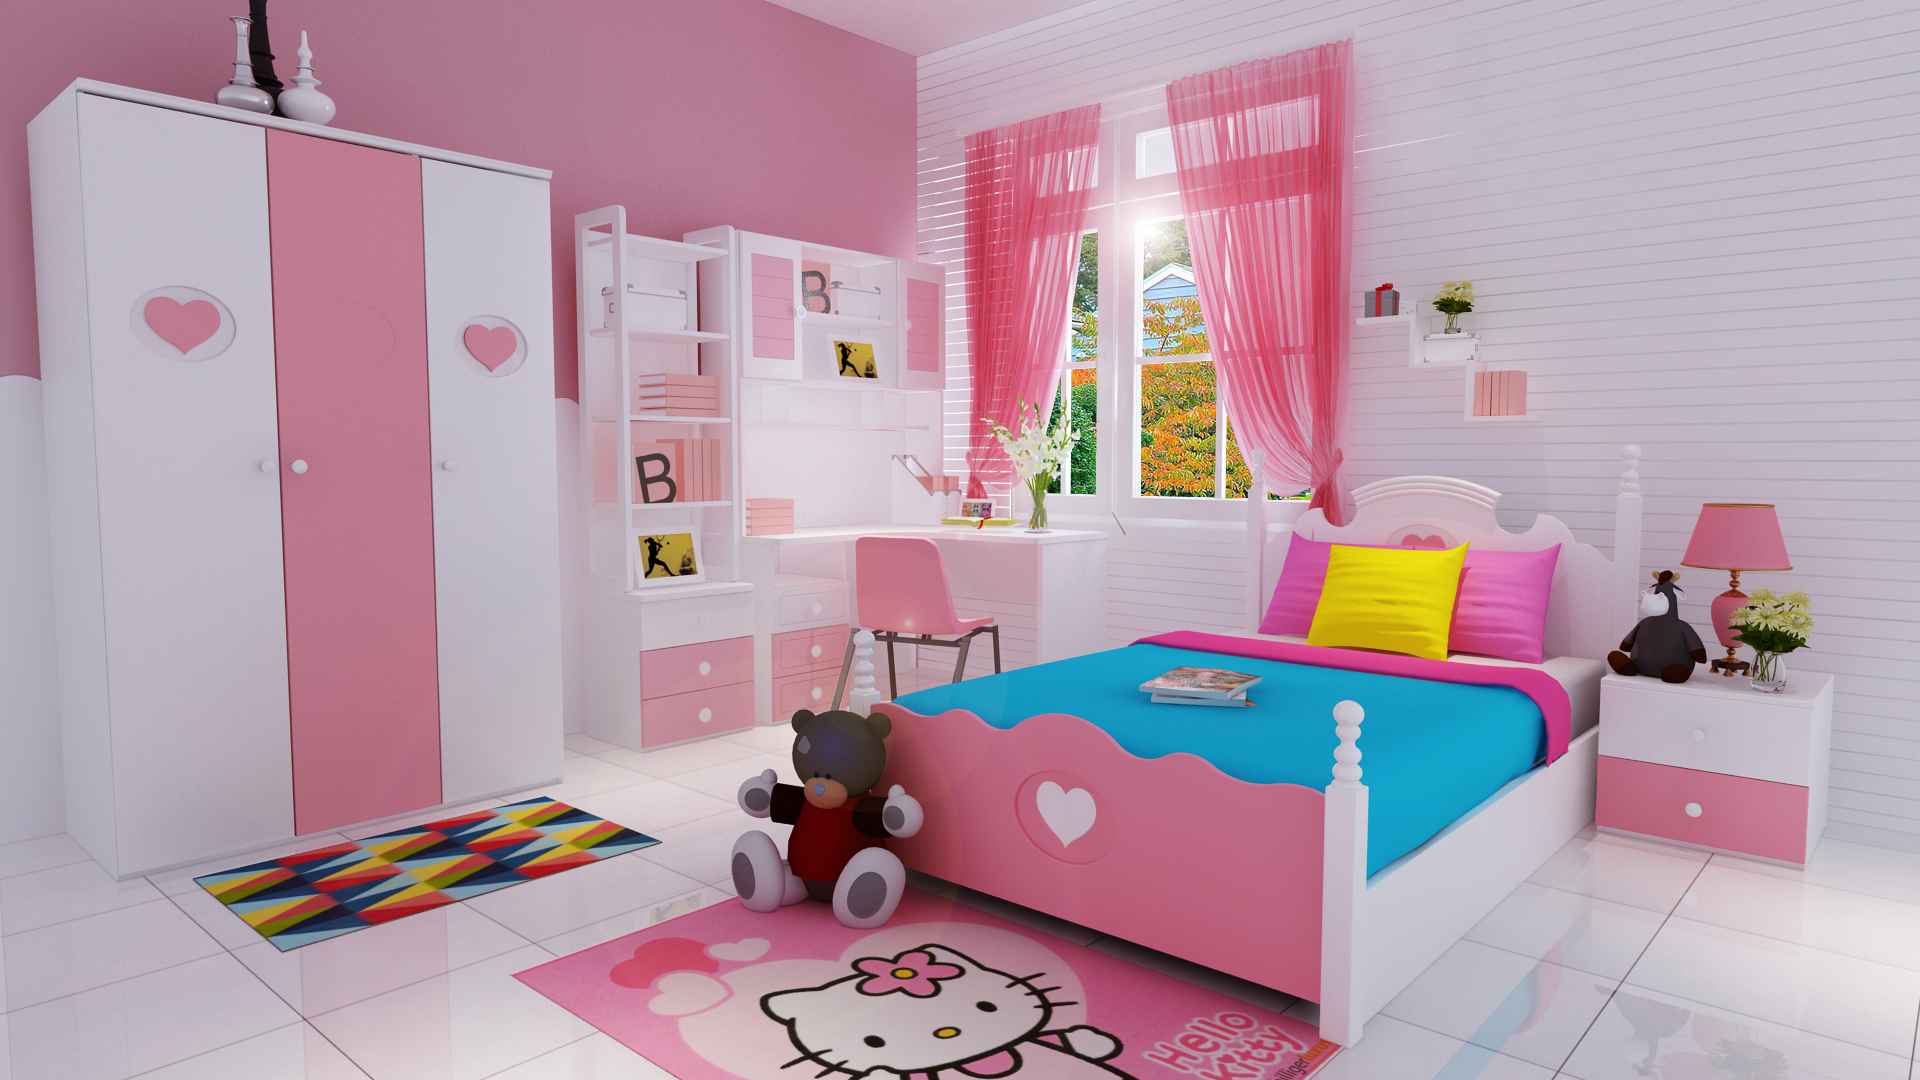 Kids bedroom ideas kids room decor kids room study for Table for kids room